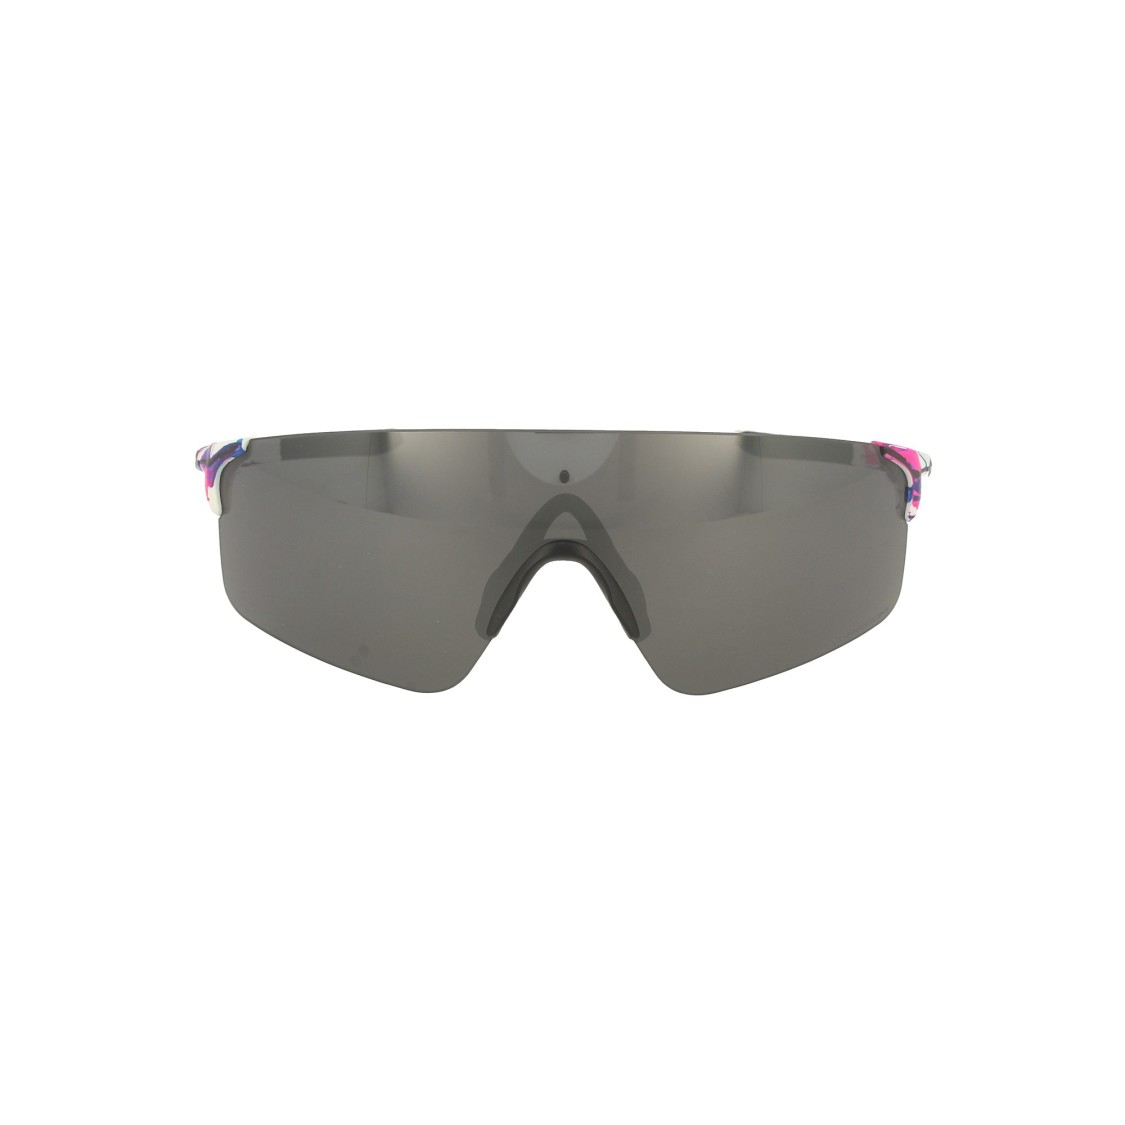 Oakley Sunglasses 9454 Sole In Not Applicable